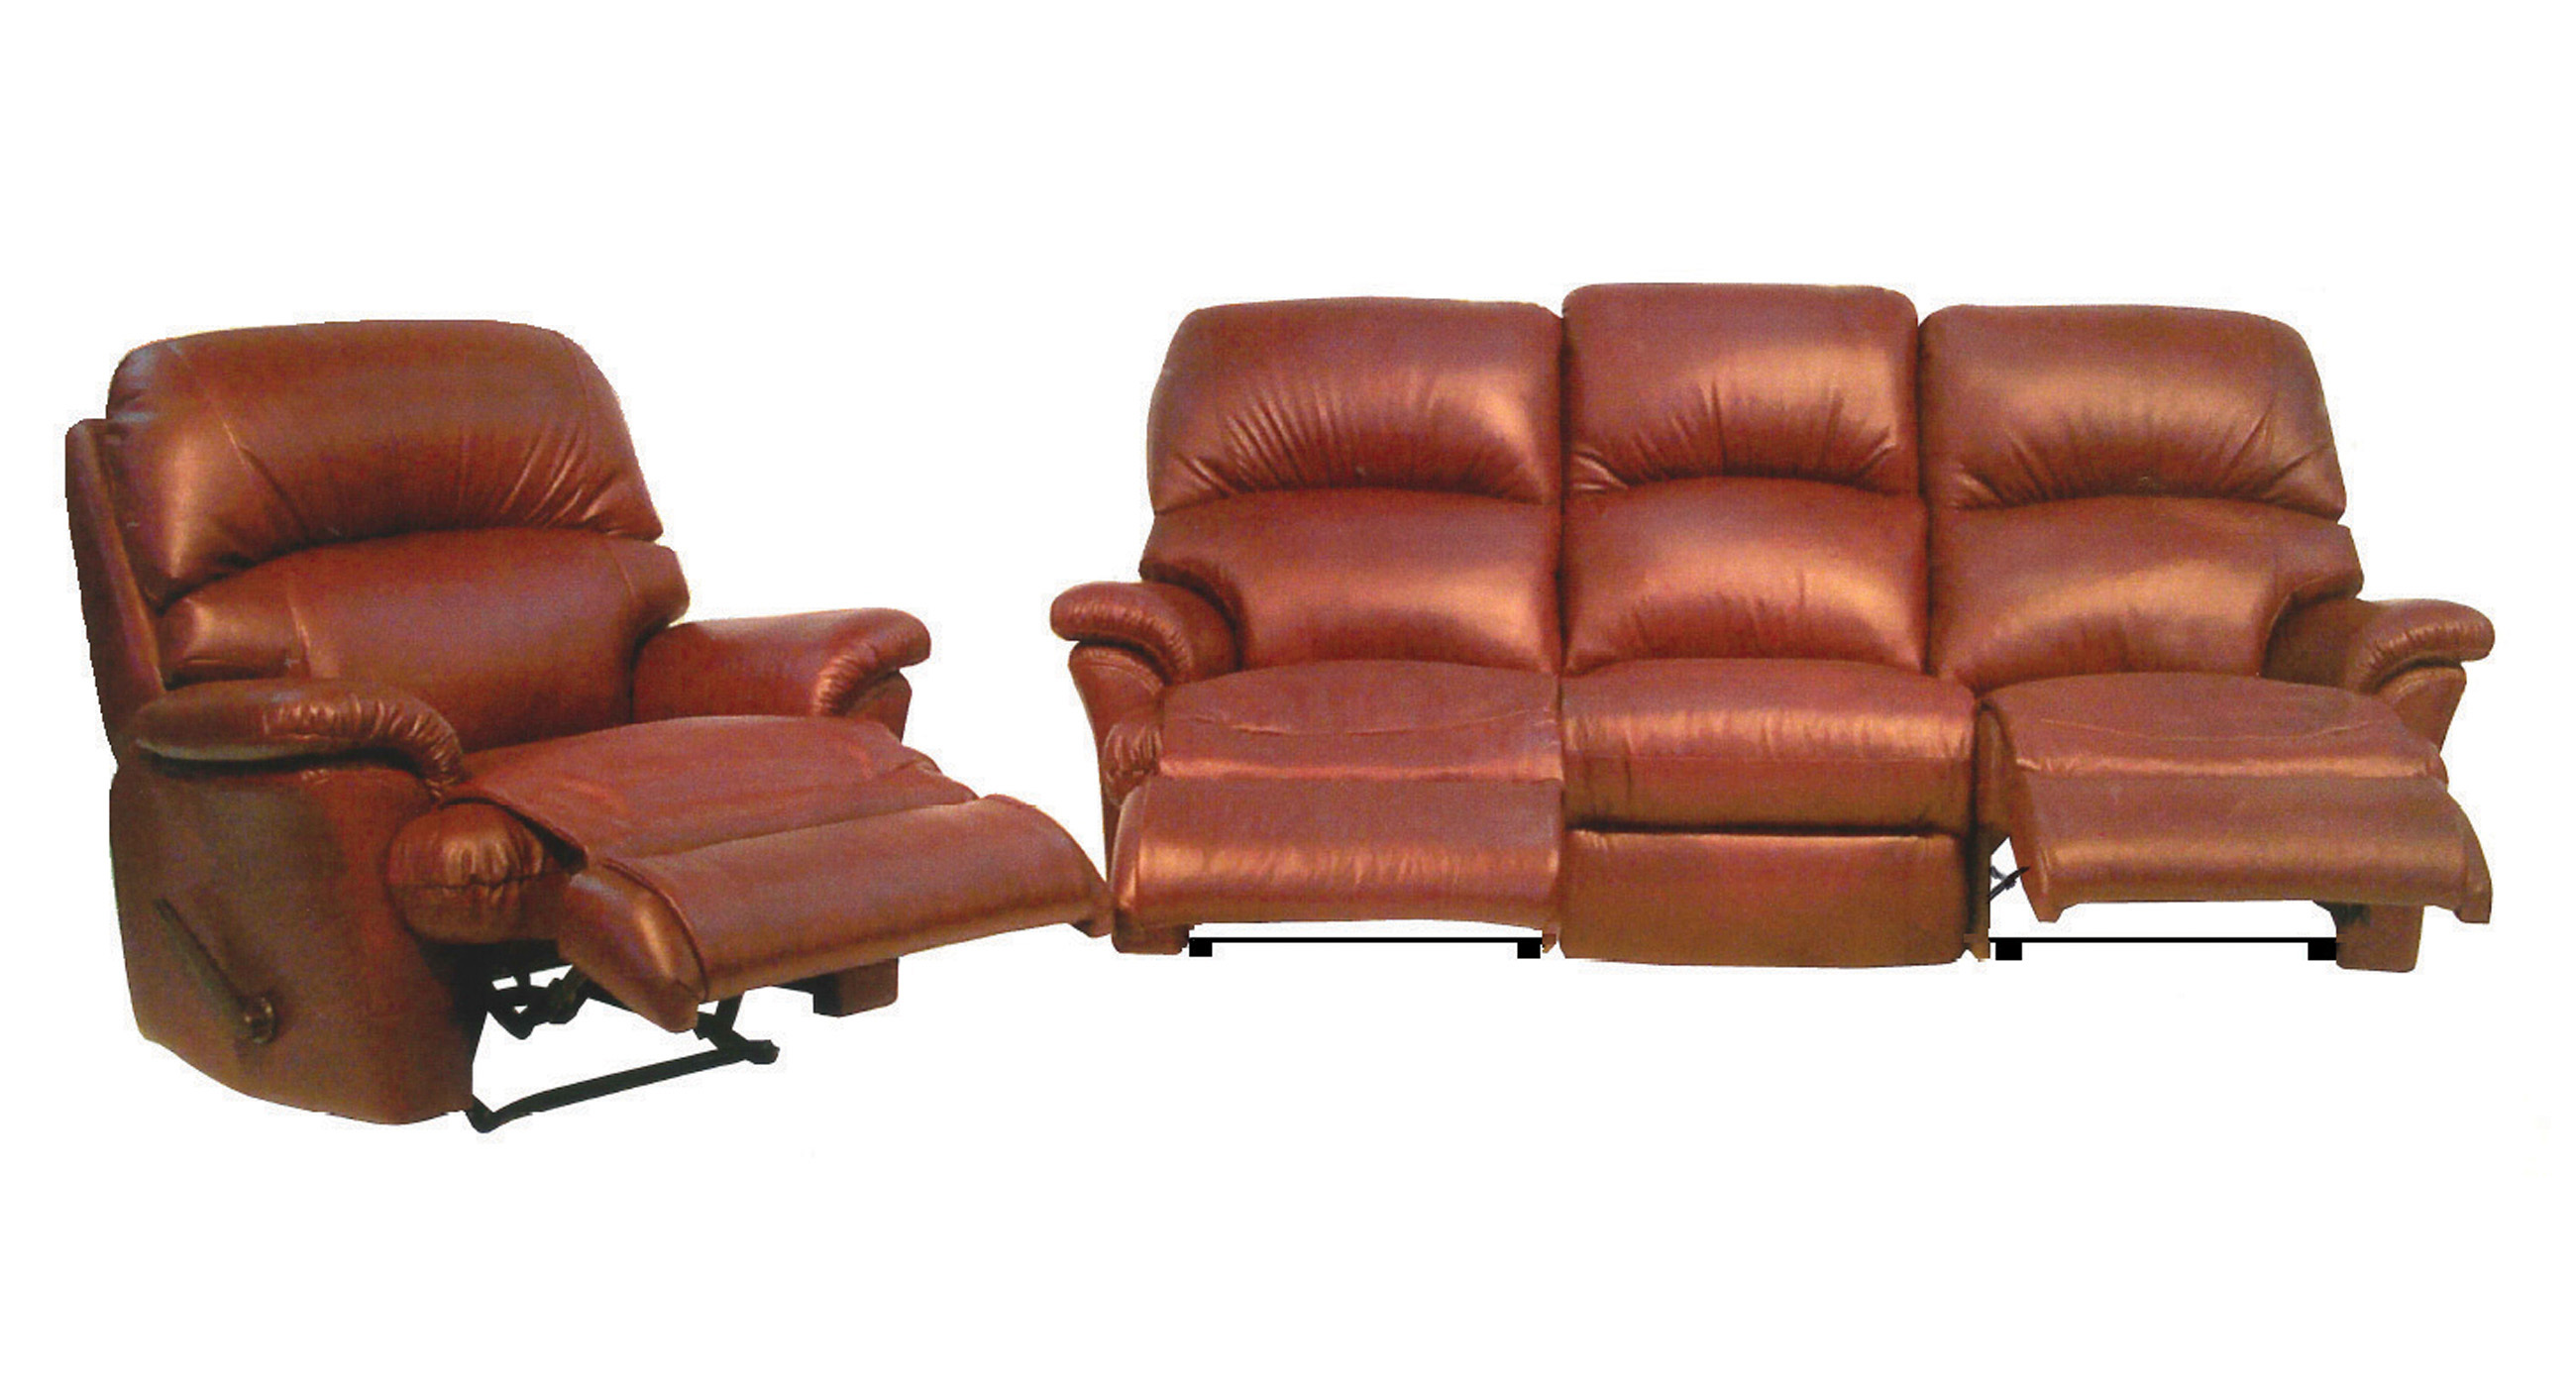 Latrobe Reclining Sofa and Chairs